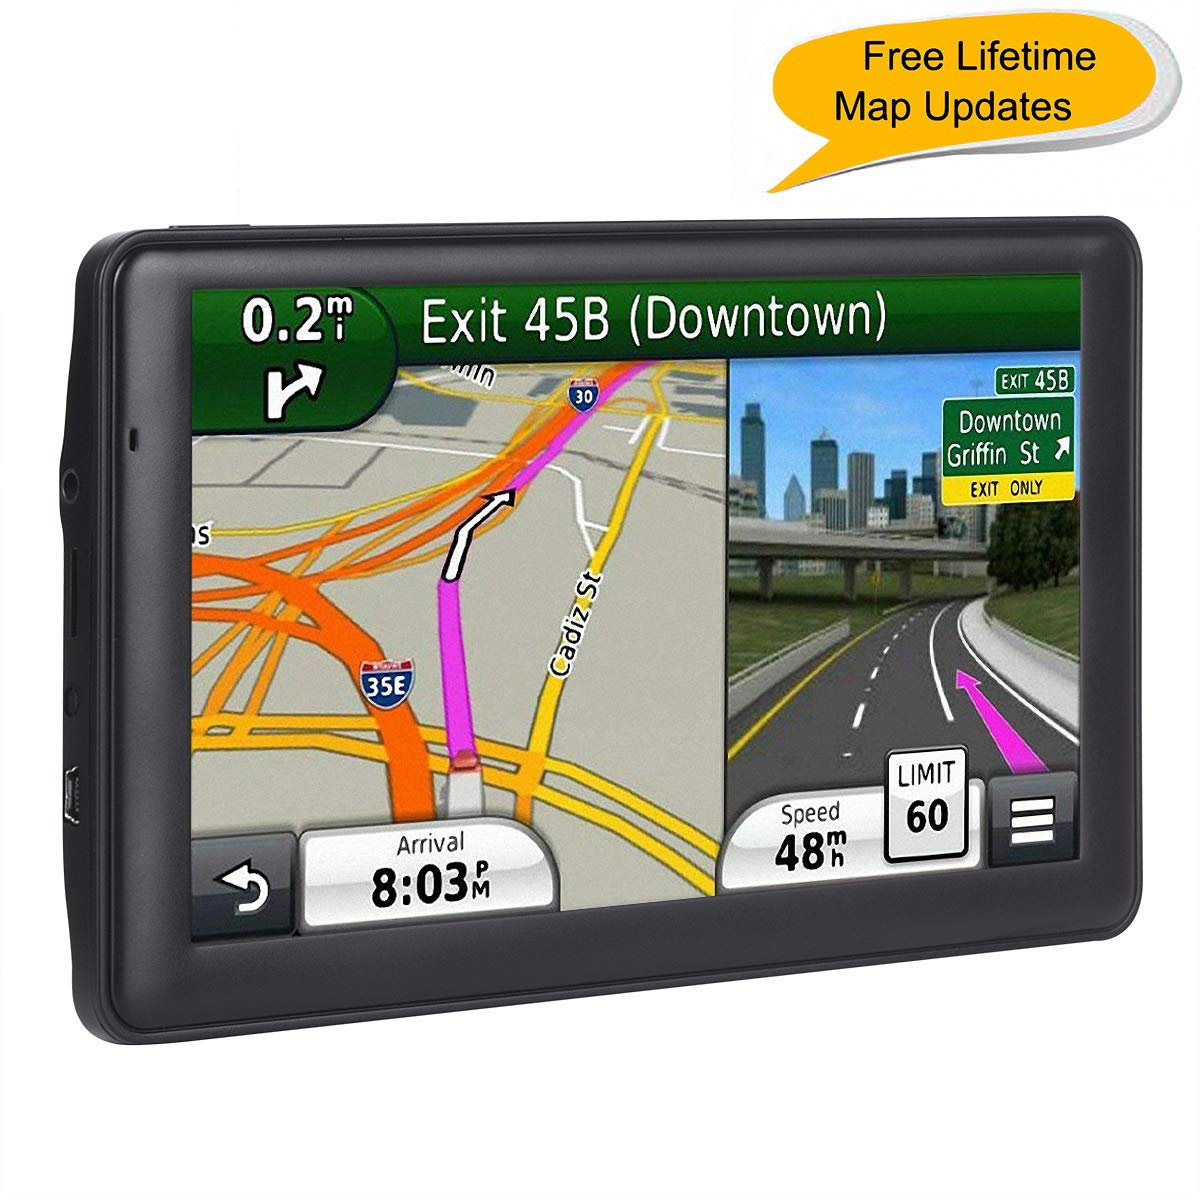 7-inch GPS for Car, Free Lifetime Map Update Navigation System for Cars, Portable Sat-Nav, Vehicle GPS Navigator (Model X) by FULiYEAR